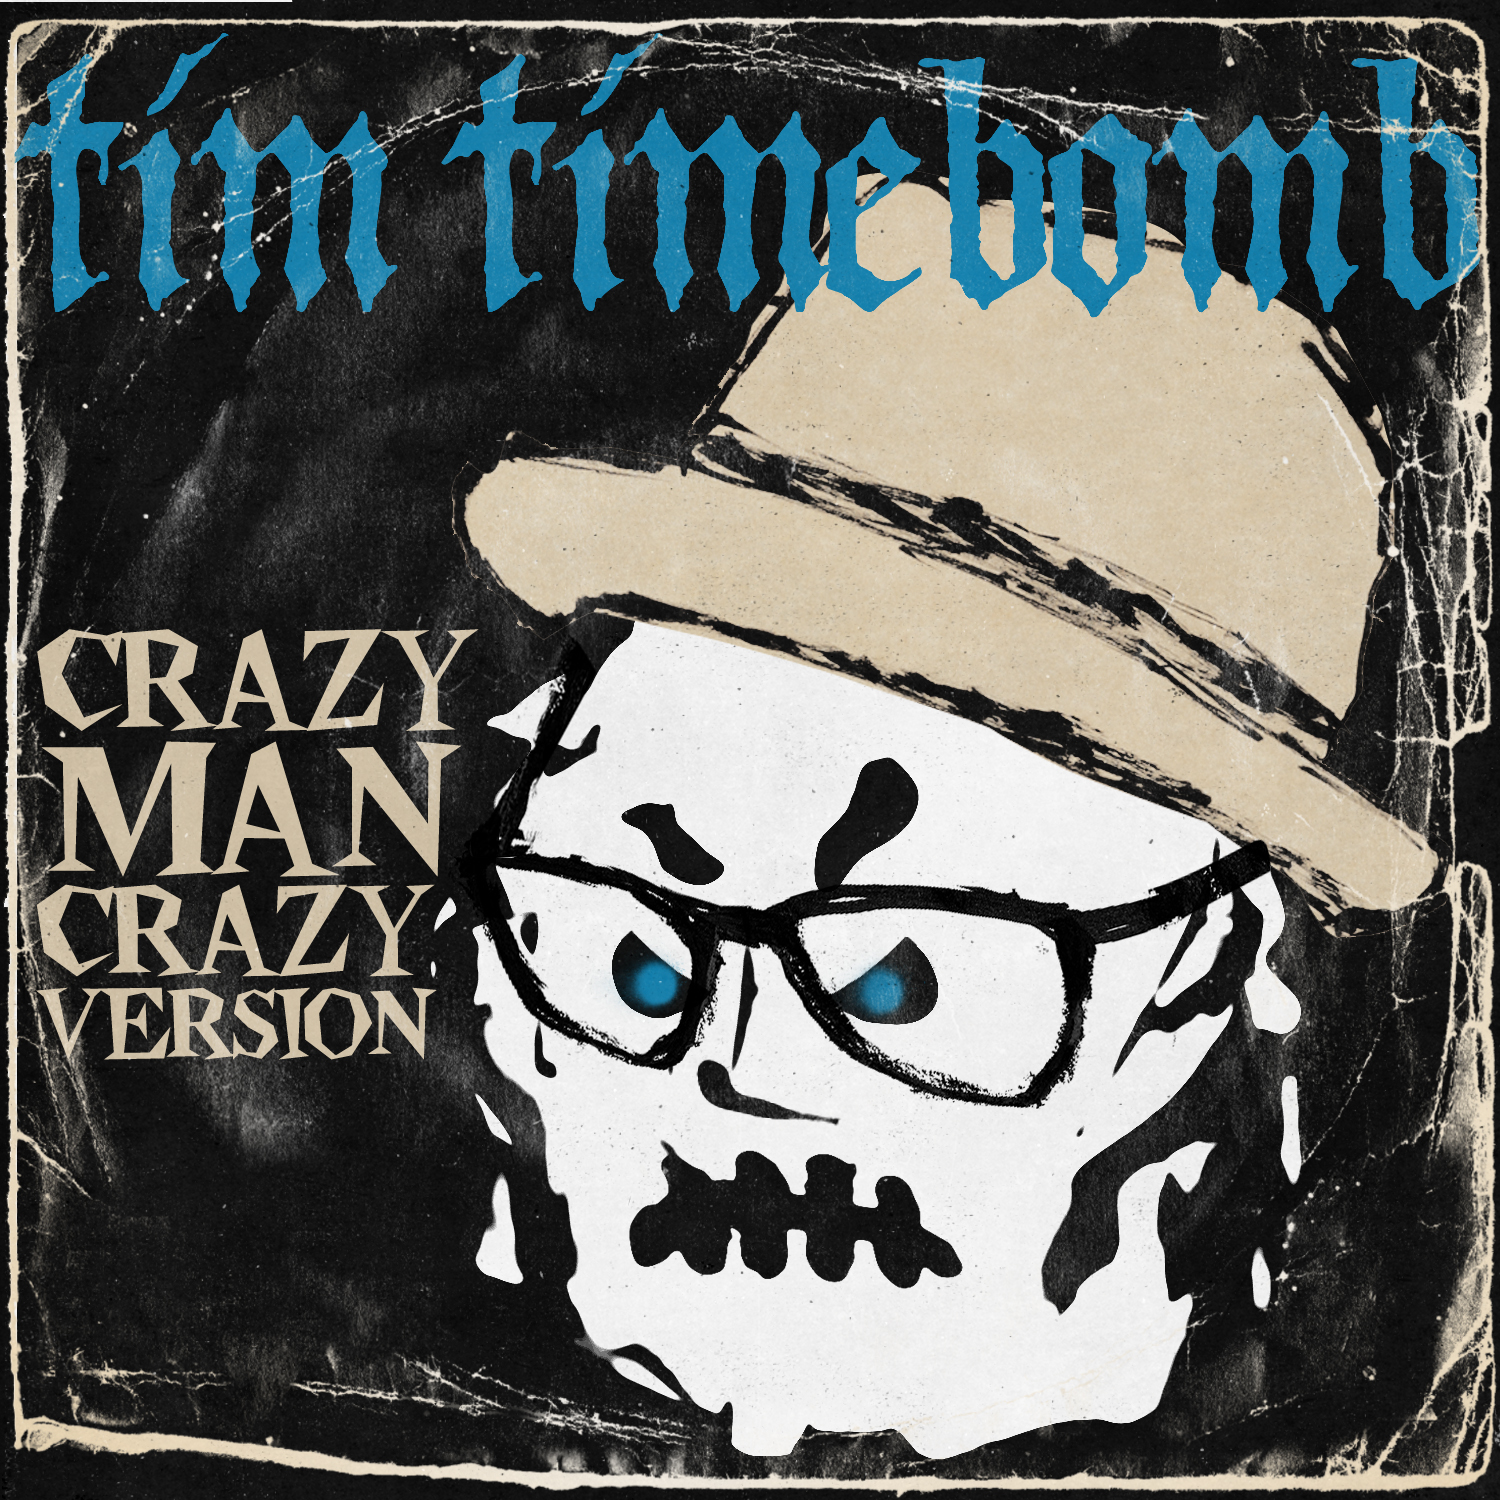 CRAZY MAN CRAZY VERSION